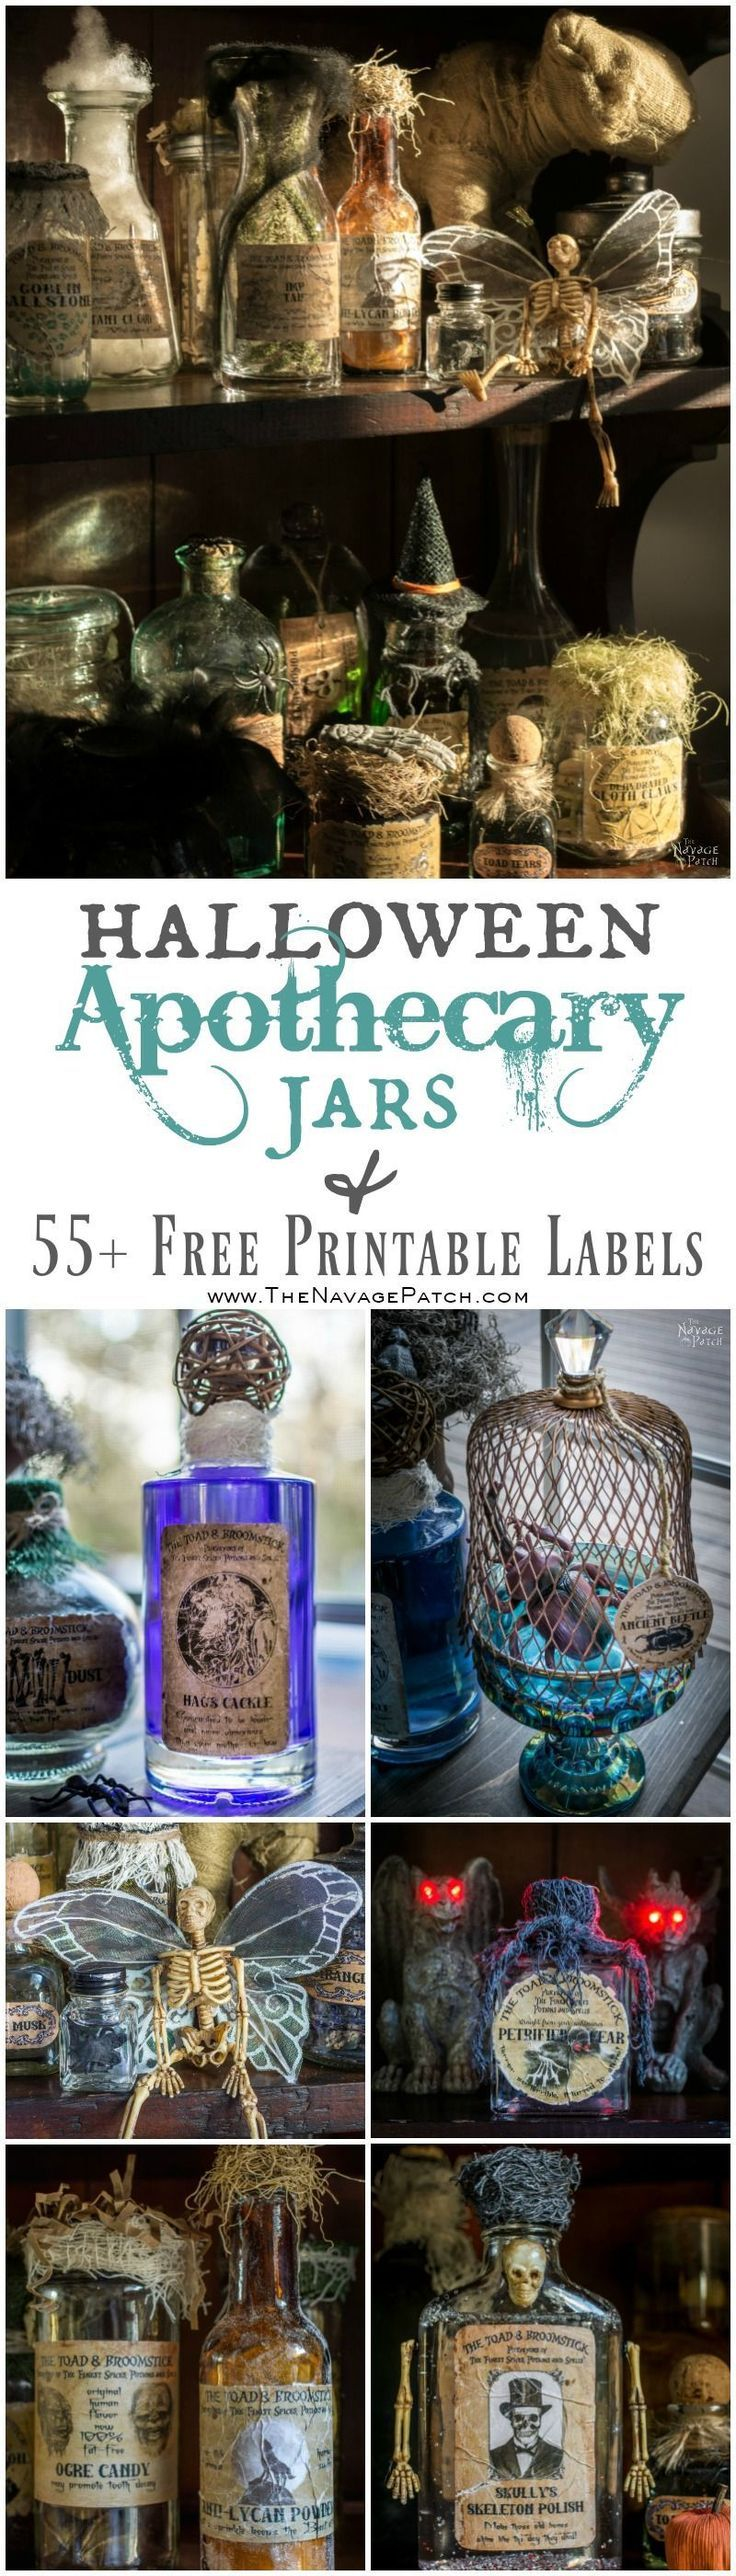 Halloween Apothecary Jars {and Free Printable Labels} | DIY Halloween decor | Harry Potter theme | Free Halloween printable with over 55 jar labels in two sizes | Potions and spells | DIY Apothecary jars decor | DIY Halloween prop | Spooky and fun witches kitchen | Grimm - Rosalee's spice shop | TheNavagePatch.com